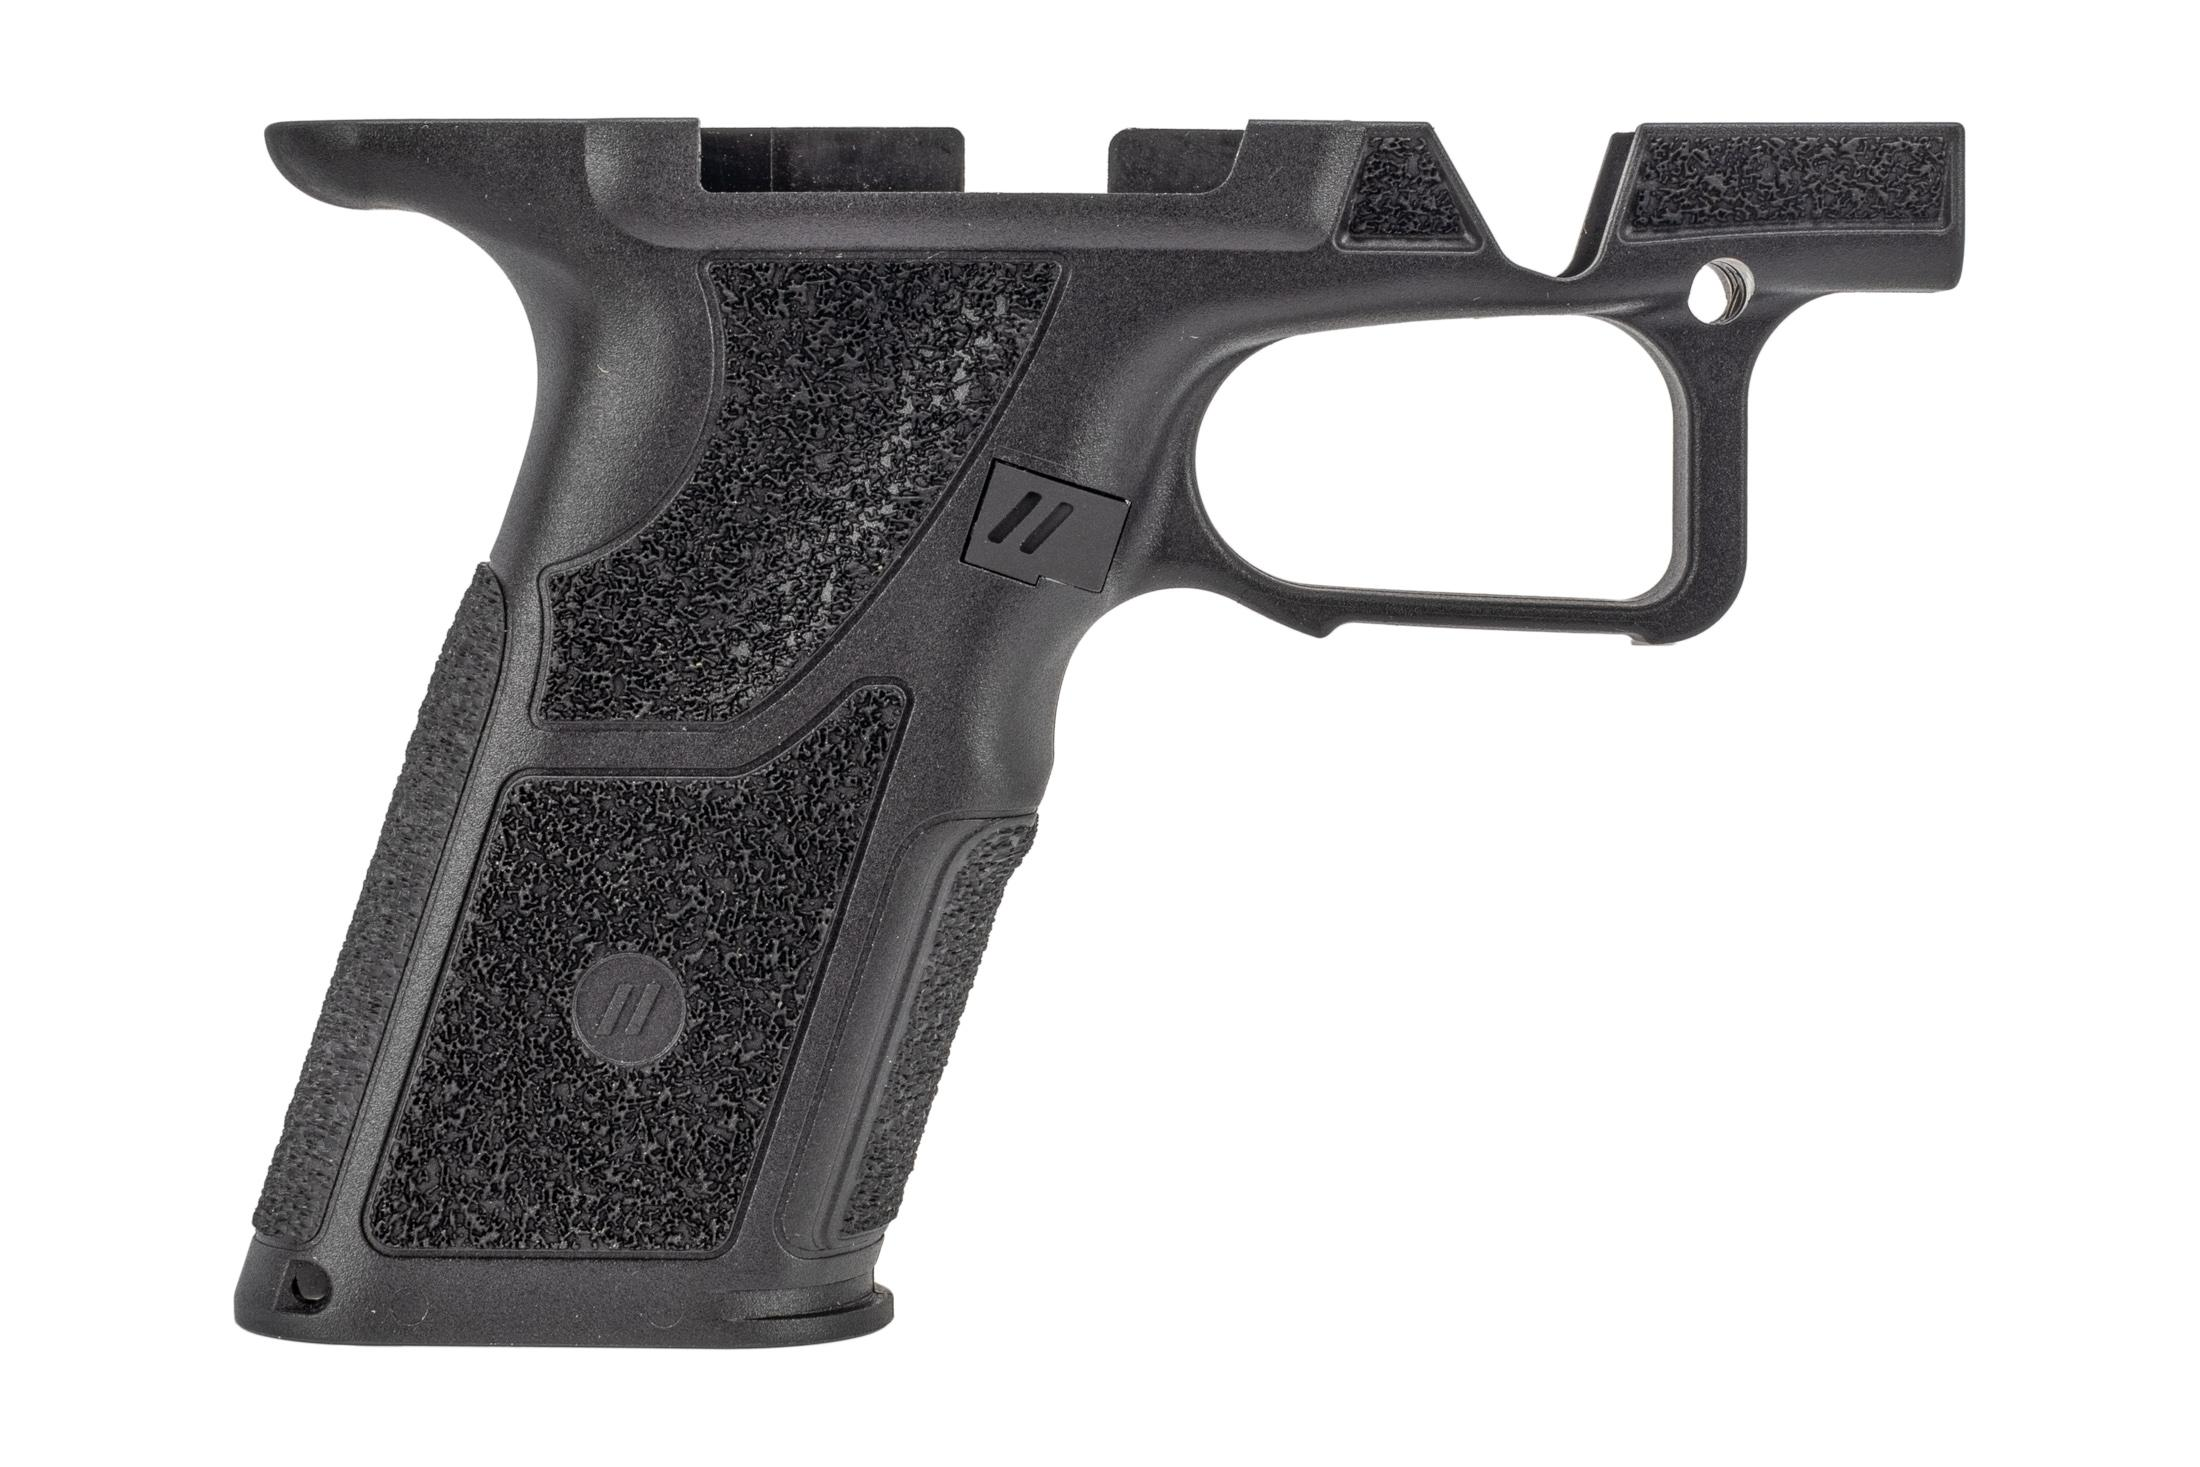 Zev Technologies Standard OZ9 Grip Kit is made from black polymer